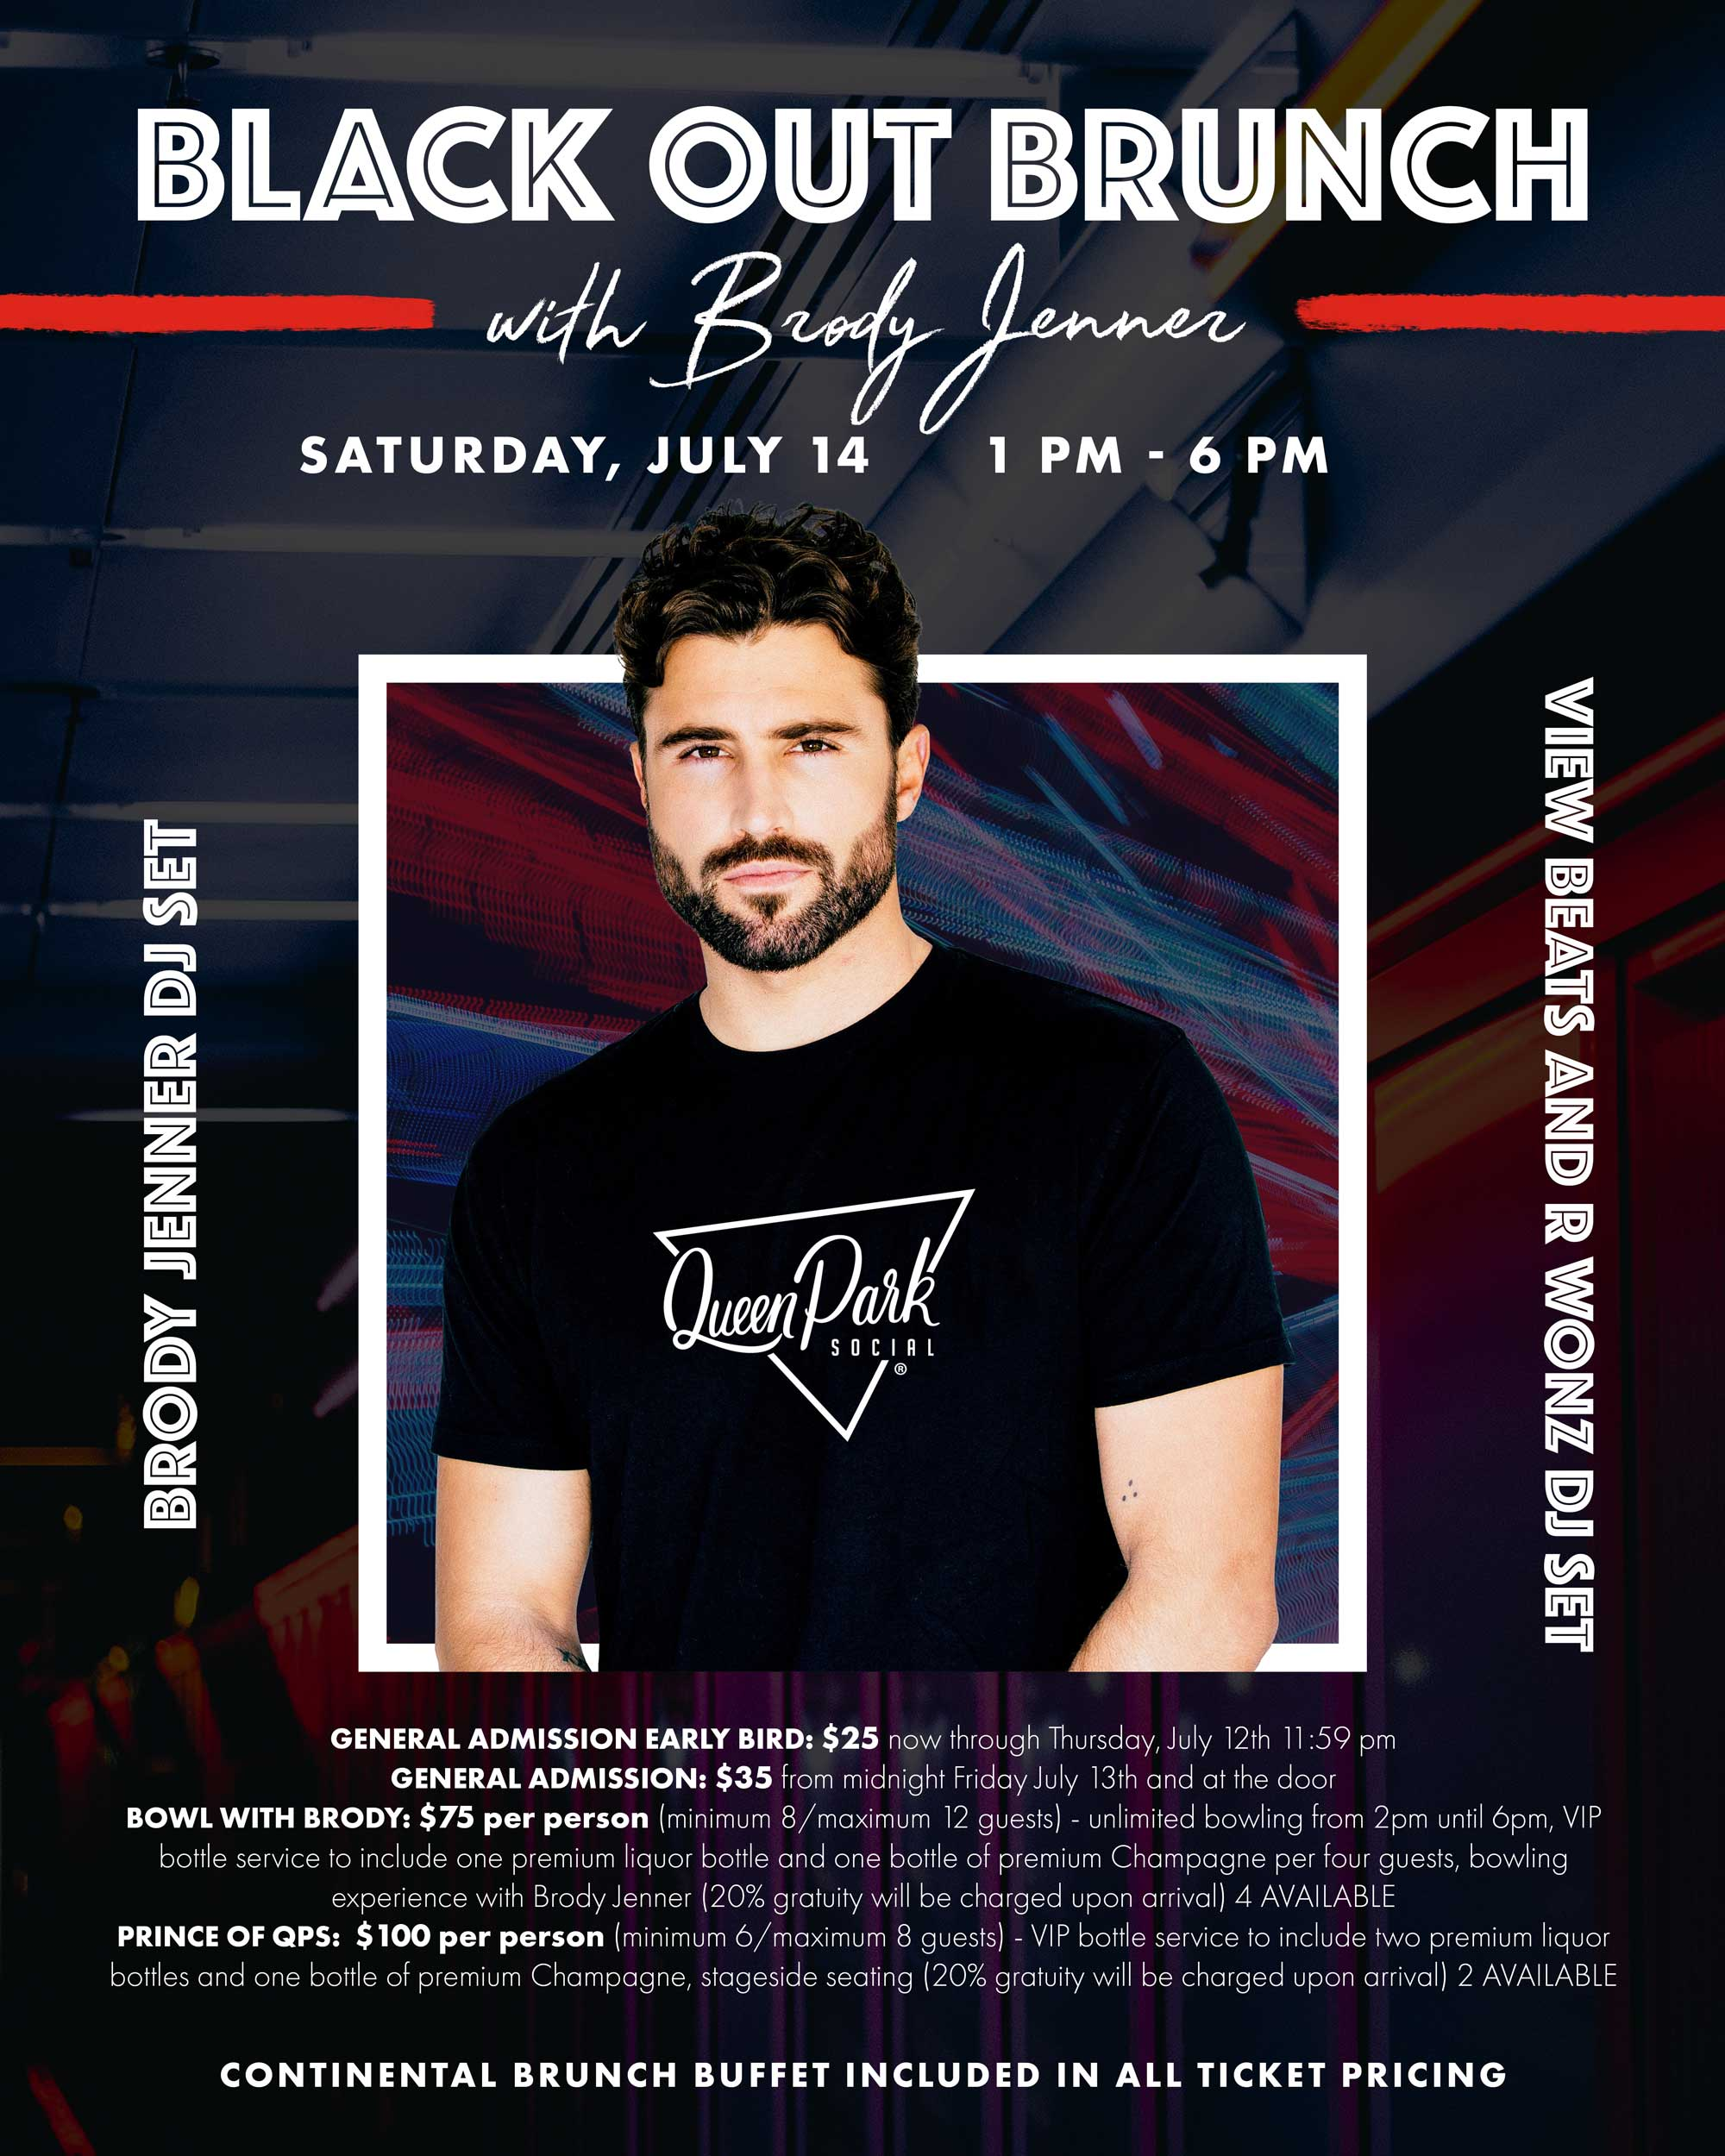 Black-Out-Brunch-Brody-Jenner.jpg